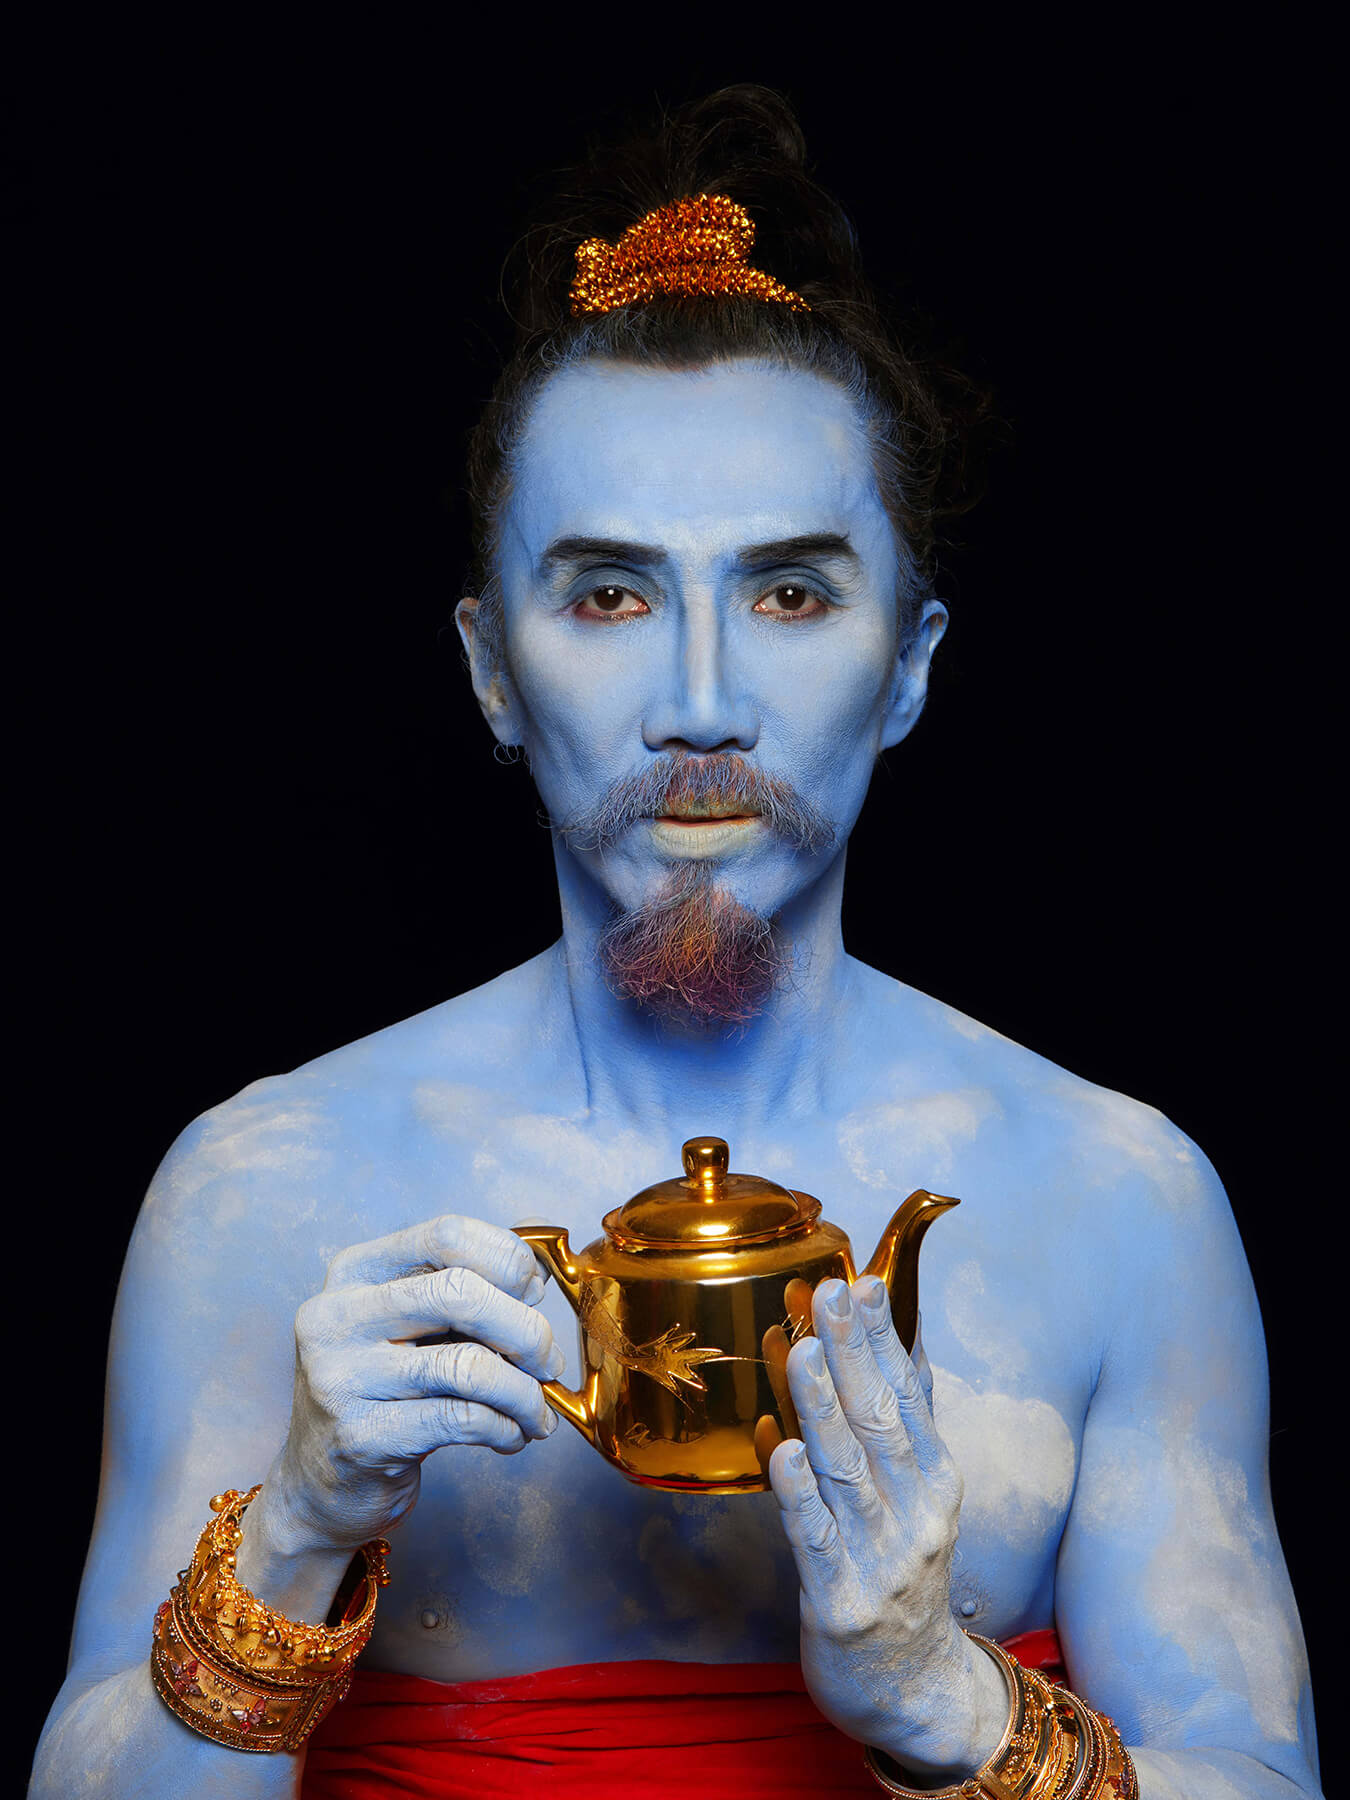 10 Nov 2017 Derong is covered in blue body paint, rubbing a magic lamp as Genie